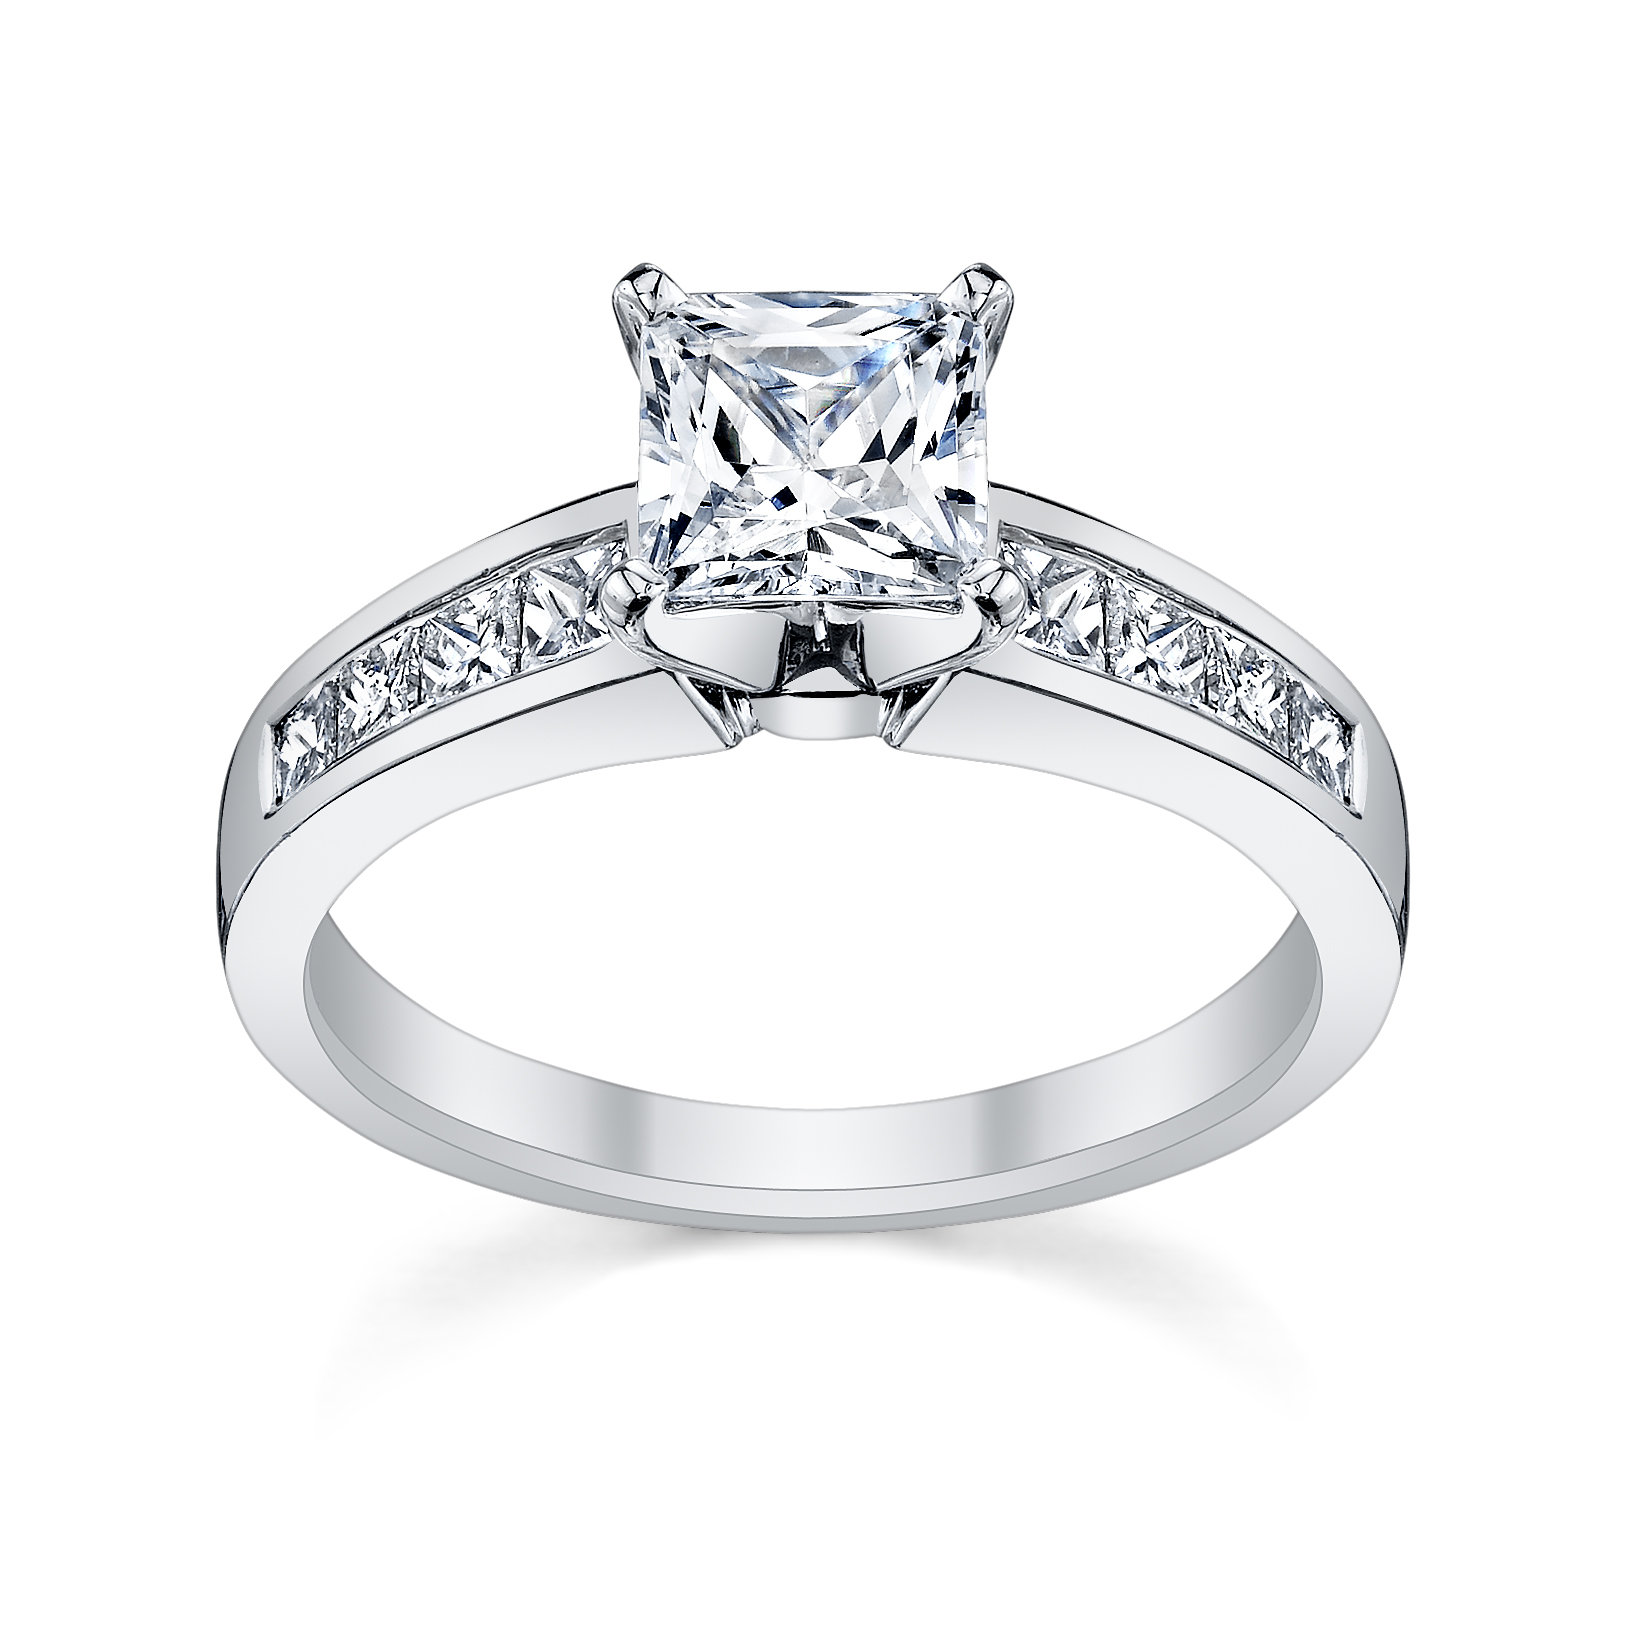 Princess Cut Diamond Engagement Ring With Side Stones From Www Robbinsbrothers Sku0388856